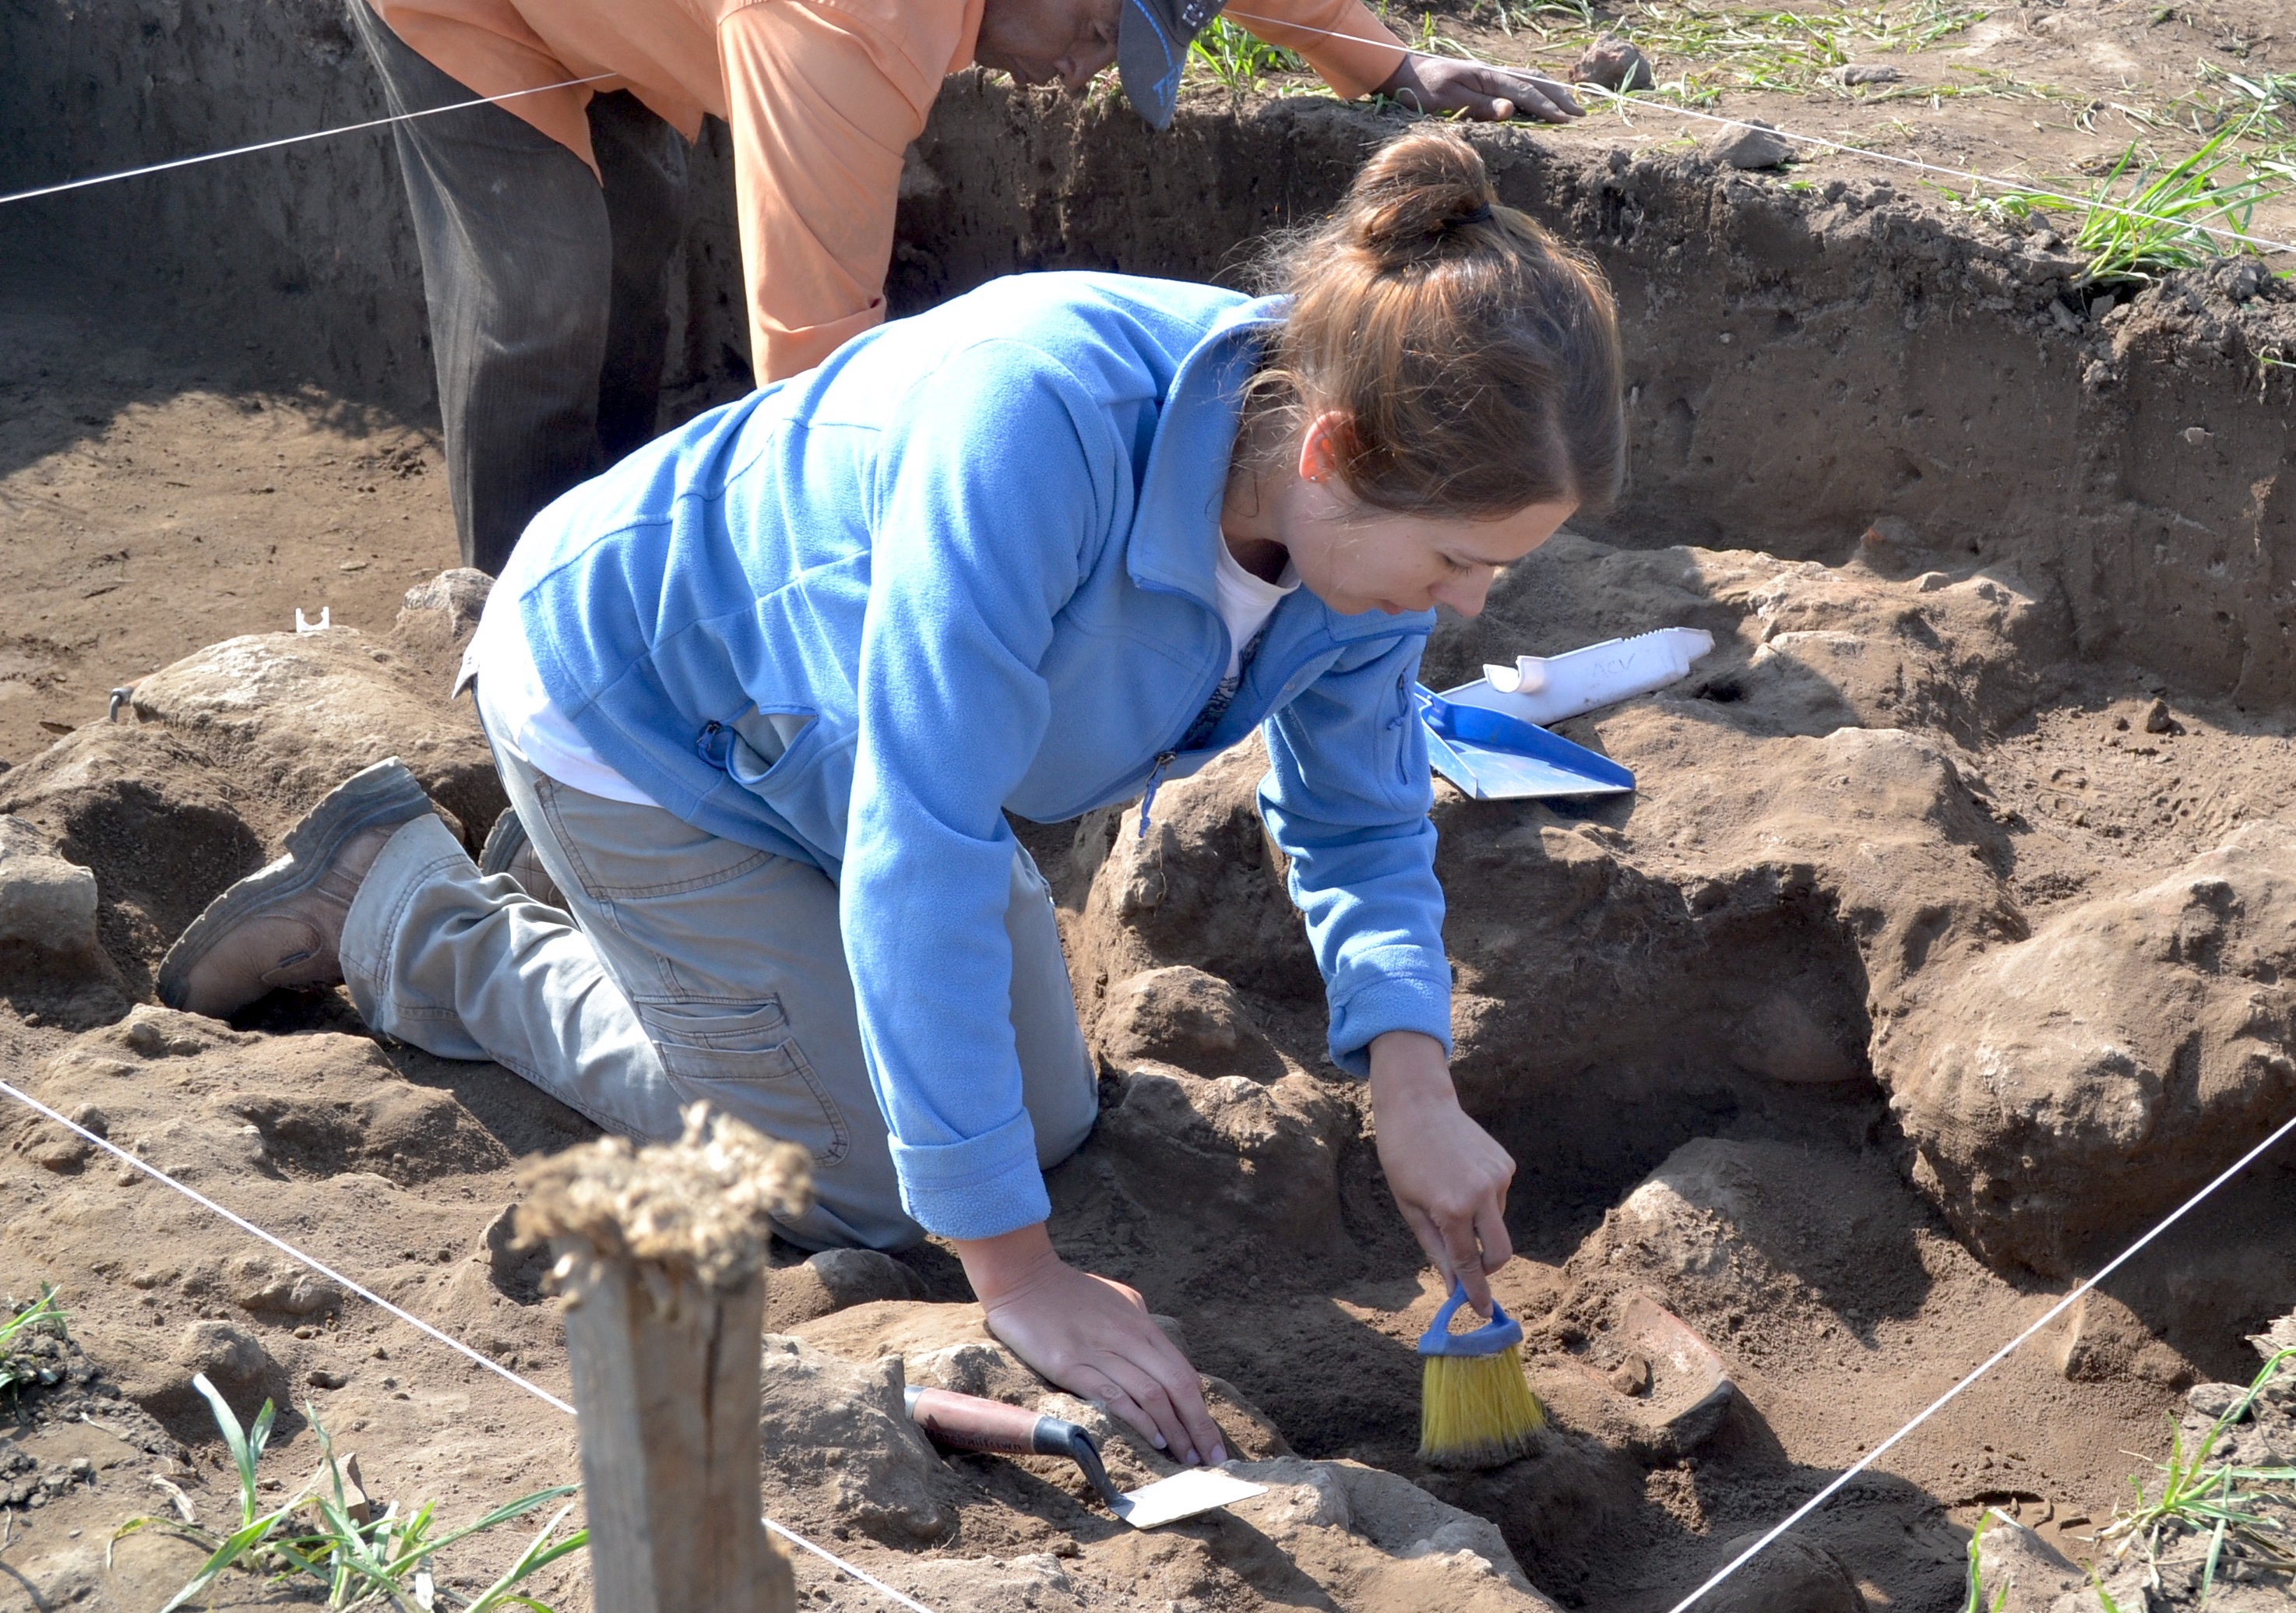 Photograph of Sarah Clayton excavating at Chicoloapan